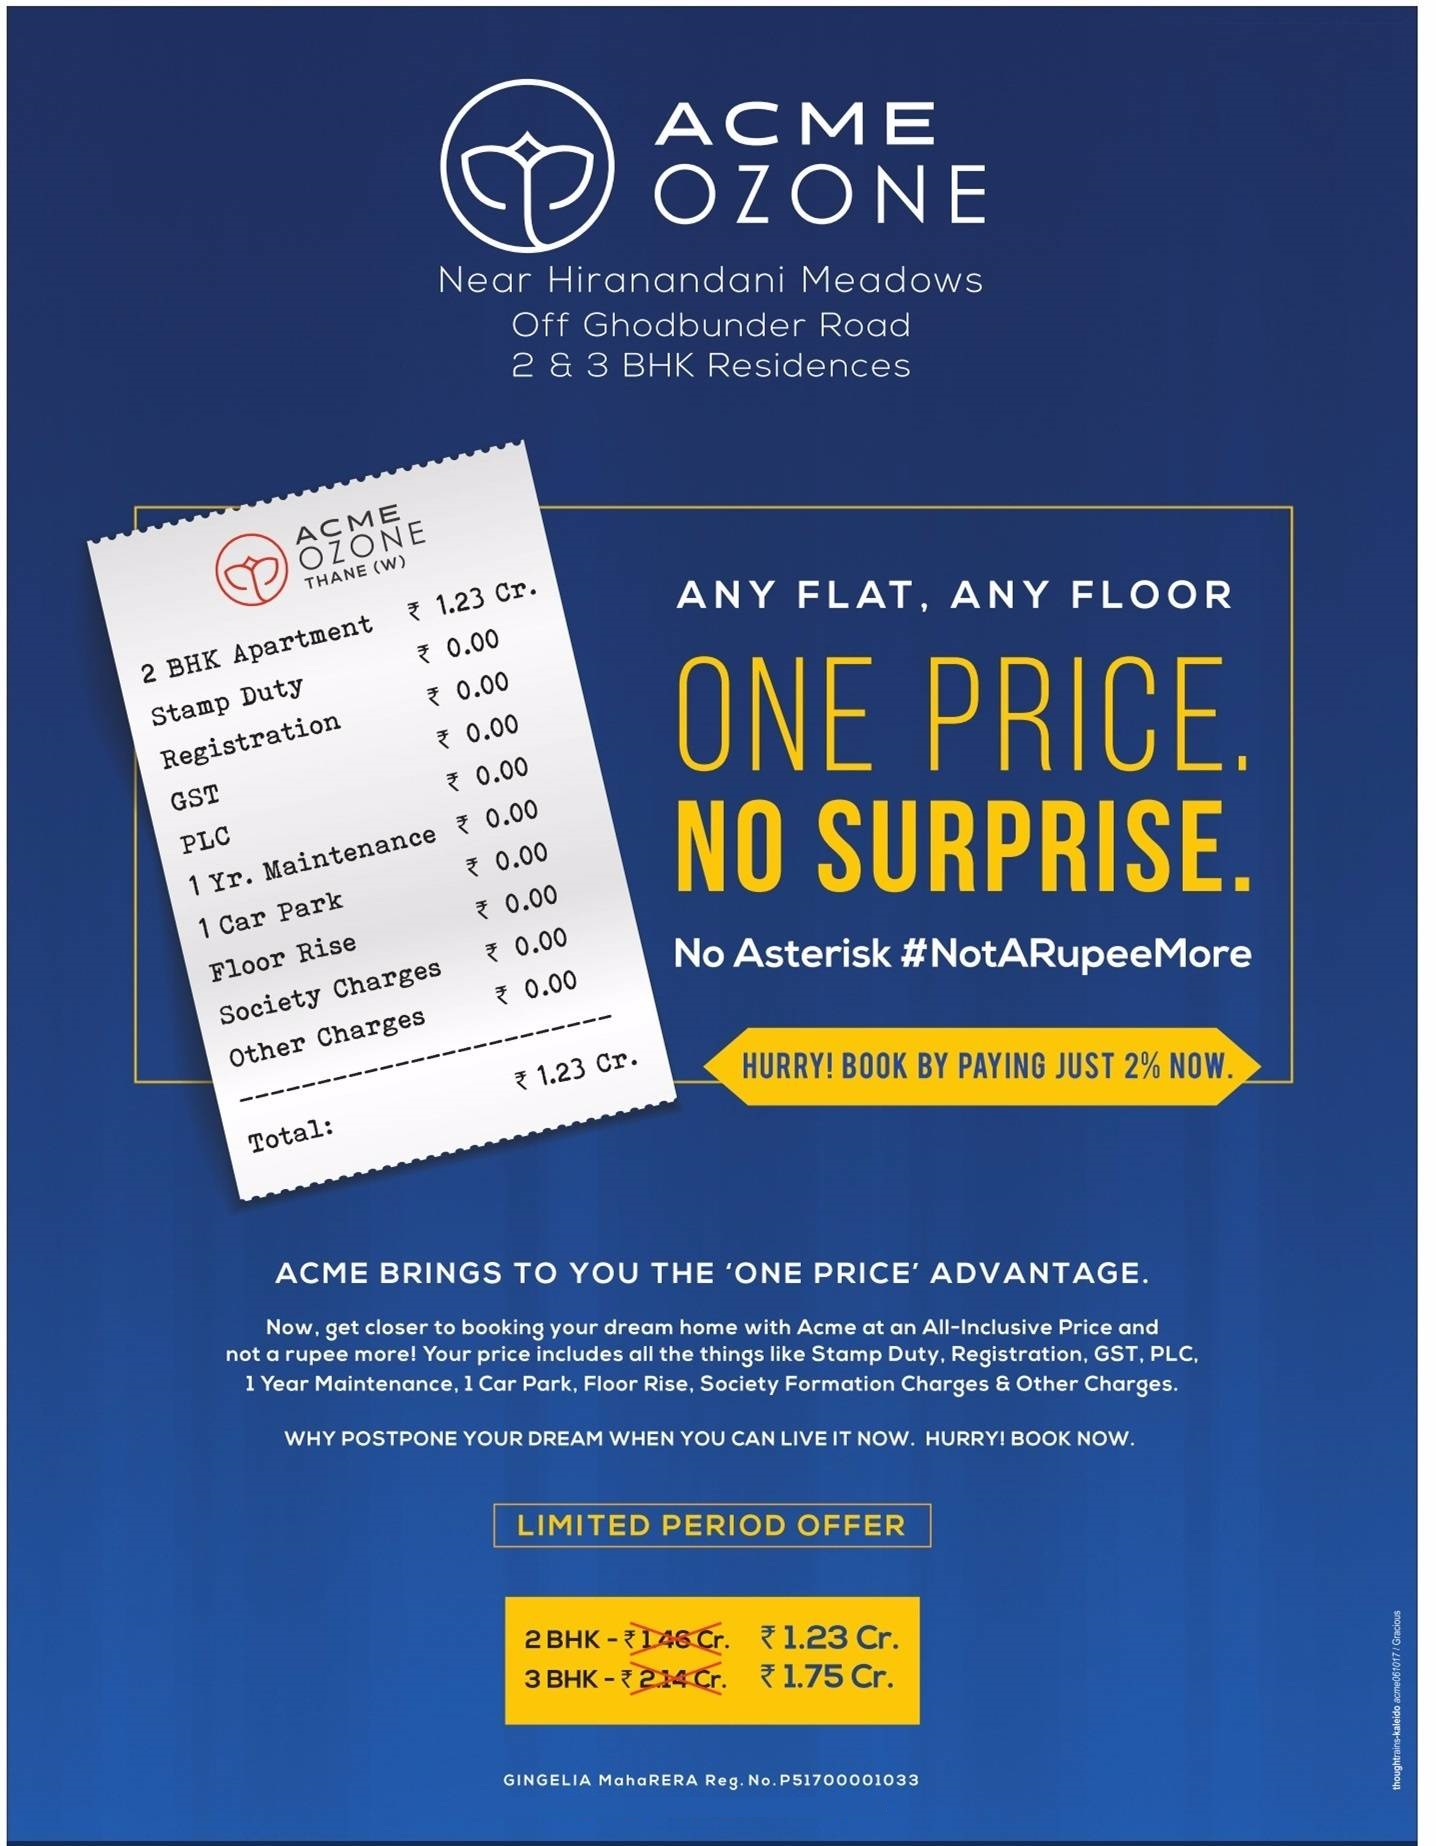 Pay just 2 now and book 2 BHK 1 23 cr 3 BHK 1 75 cr at Acme Ozone in Mumbai